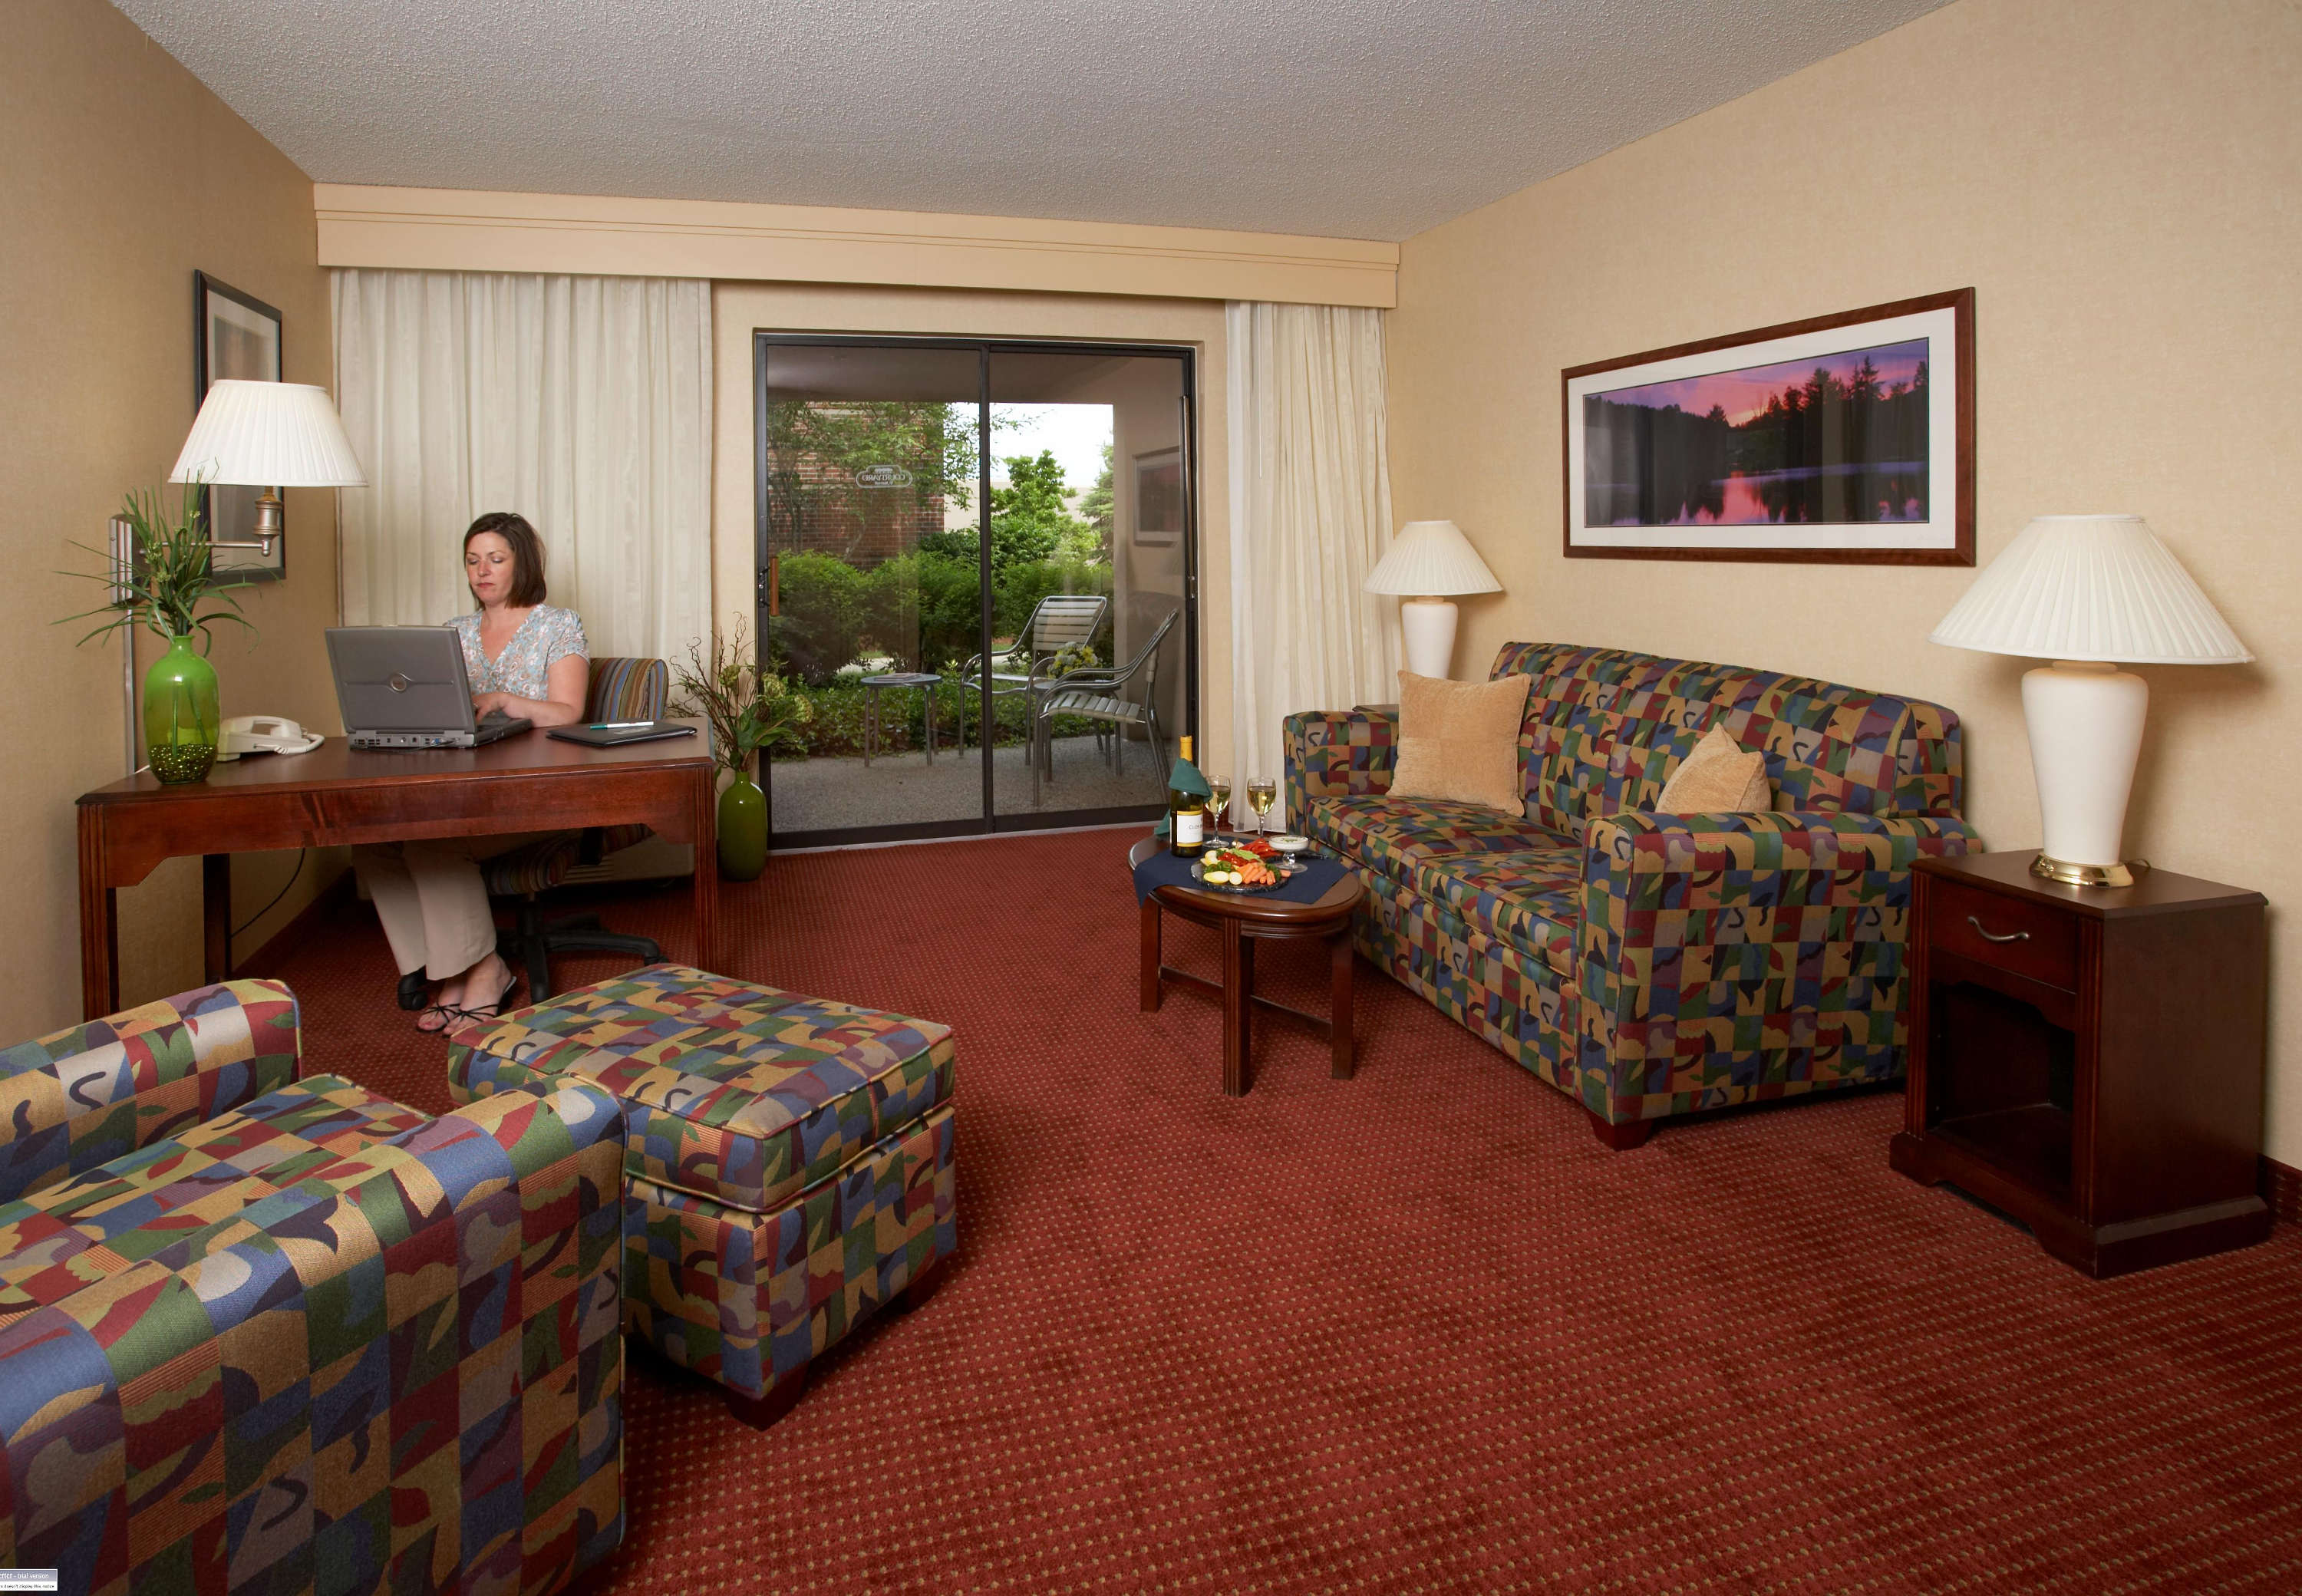 Courtyard by Marriott Concord image 4